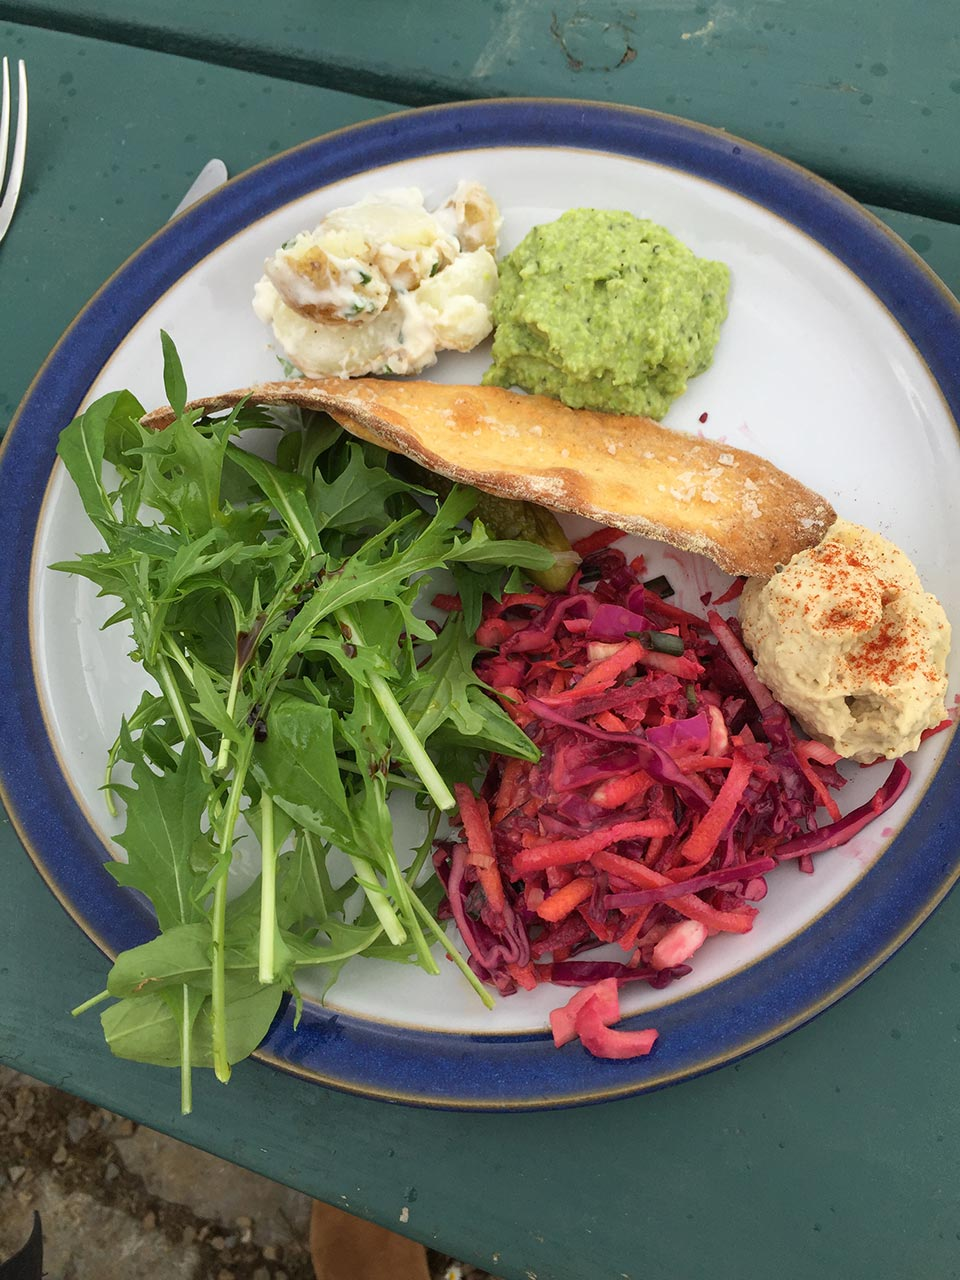 A vegan lunch including pita chips, red cabbage and carrot slaw, potato salad, fava bean puree, fresh greens, and hummus.